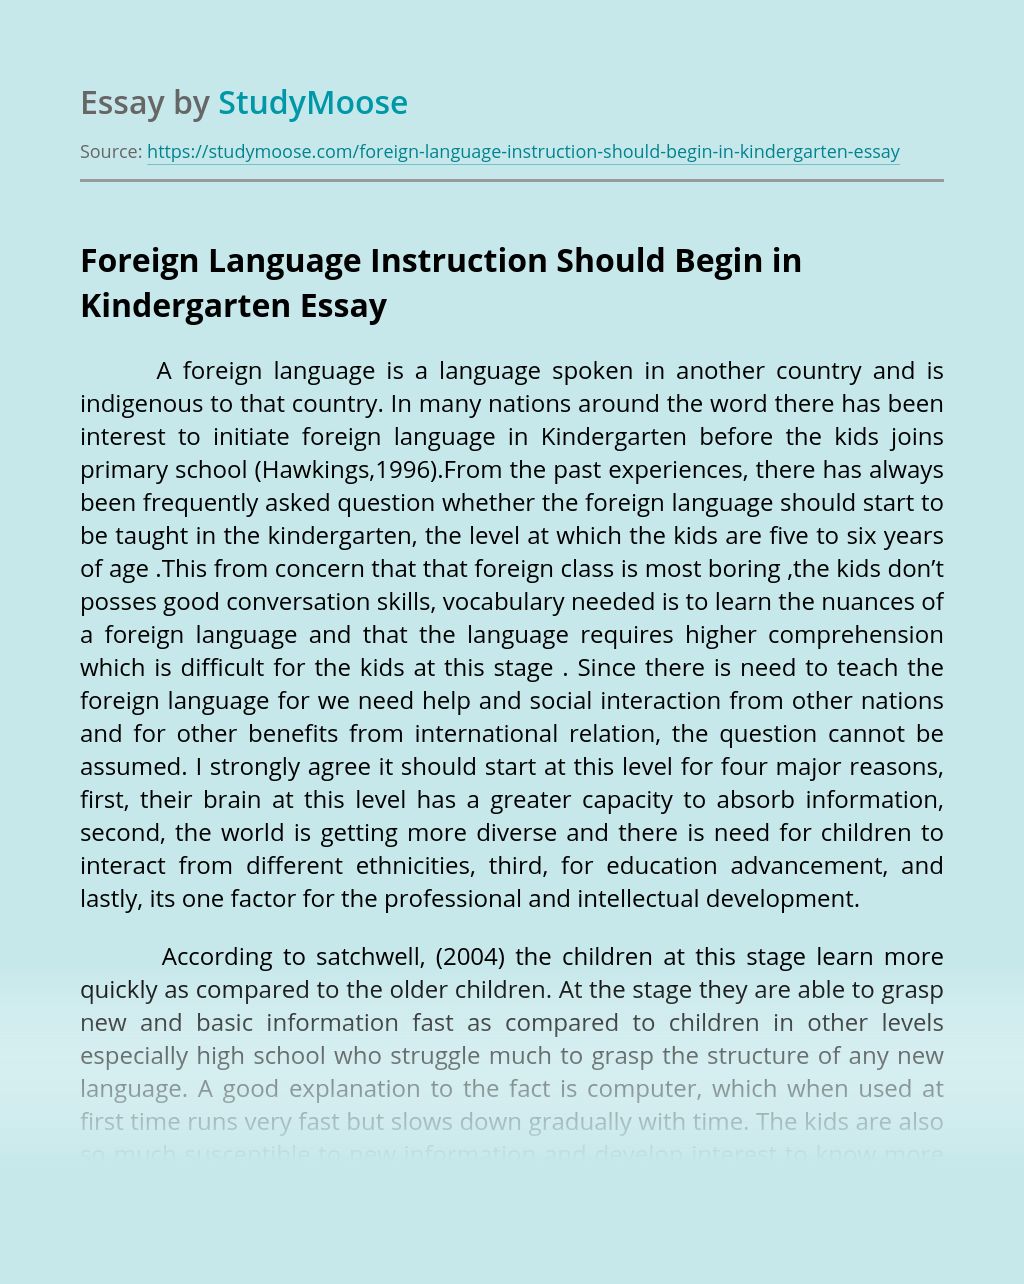 Foreign Language Instruction Should Begin in Kindergarten